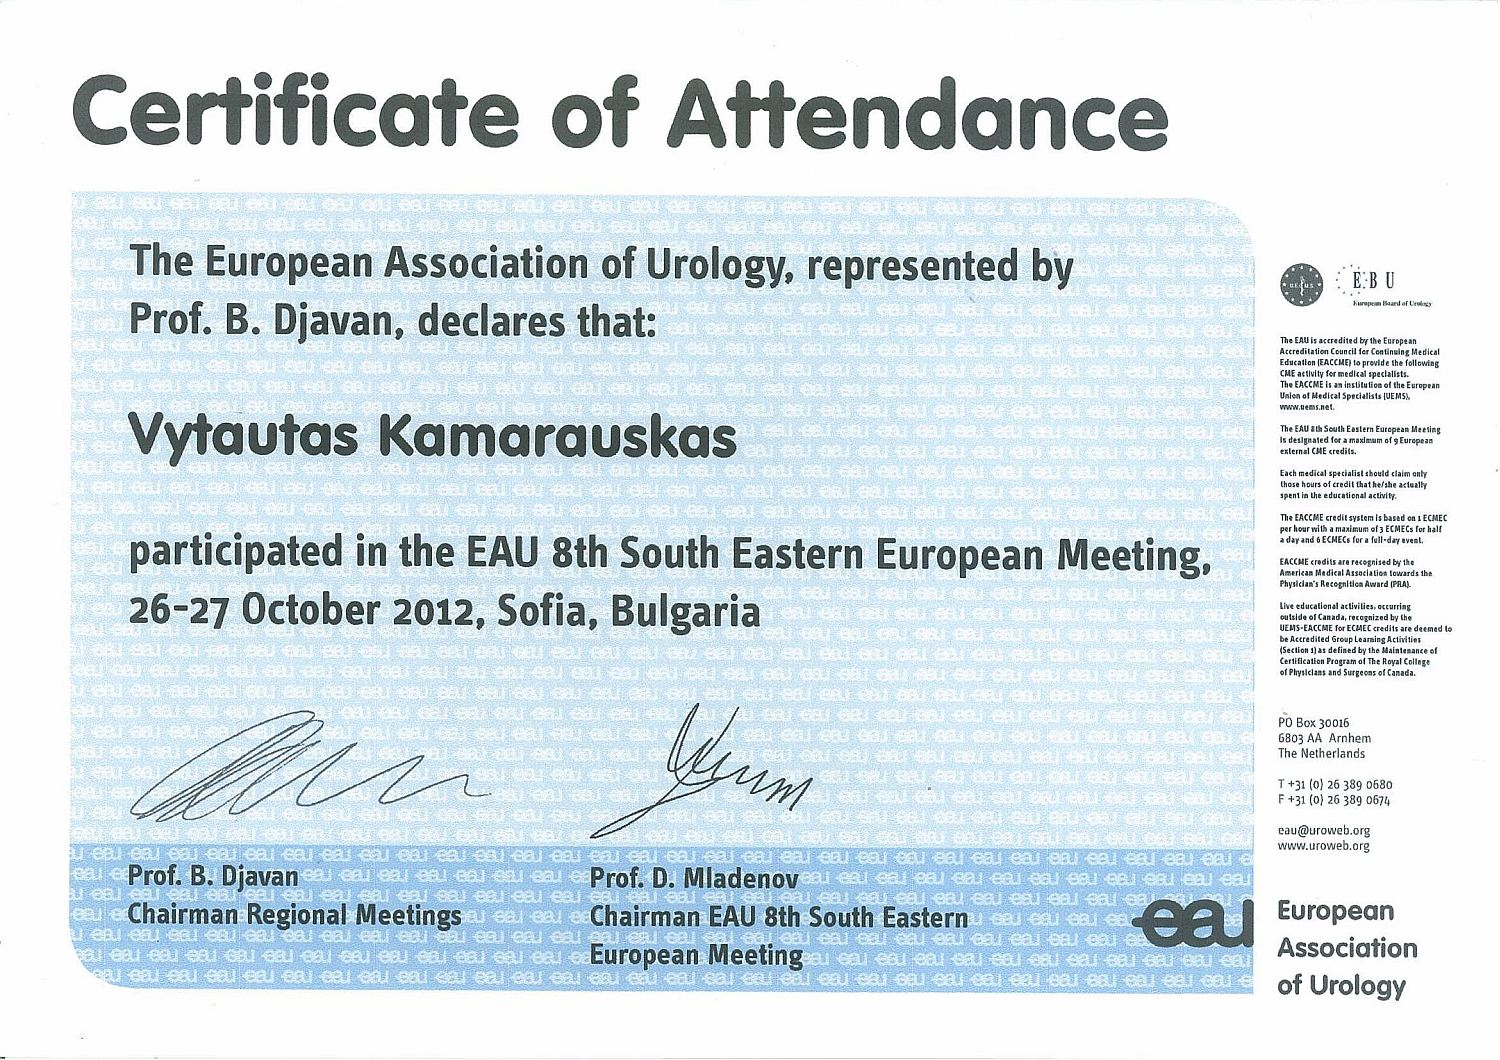 European Association of Urology 8th South Eastern European Meeting in Sofia, 26-27 October 2012